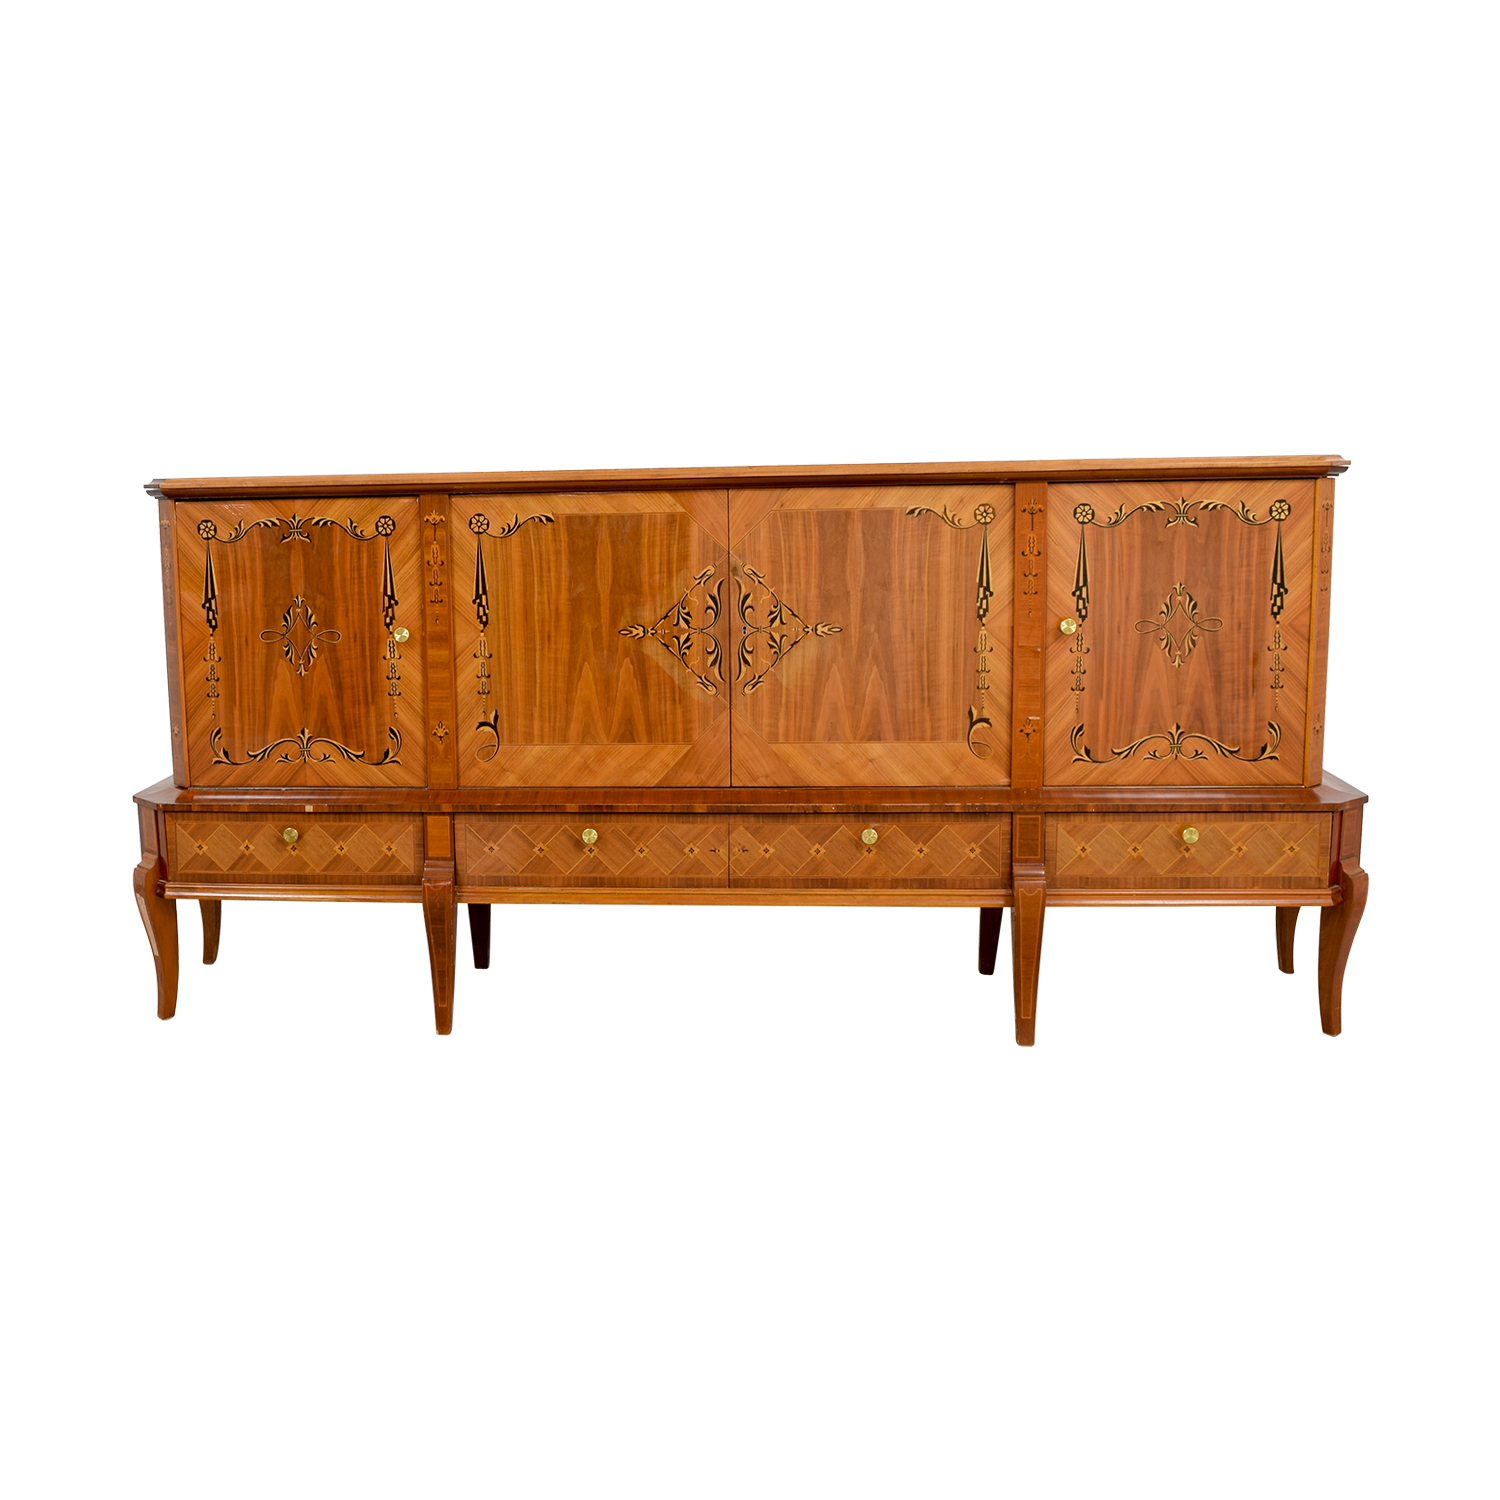 Romanian Sheraton Solid Wood Sideboard dimensions